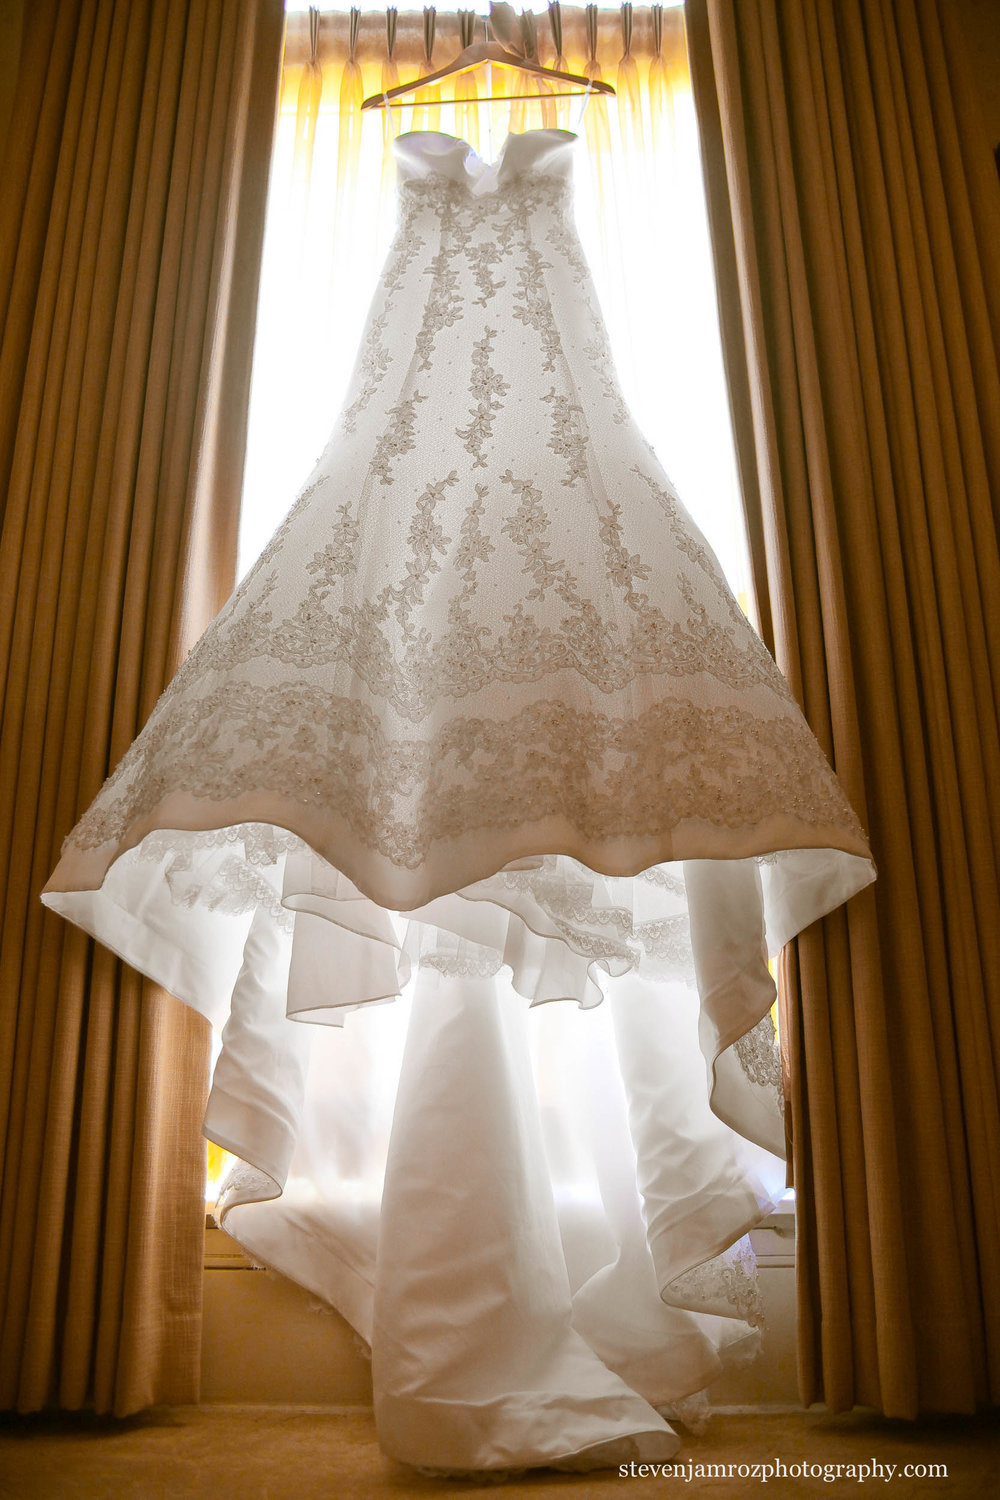 hanging-wedding-dress-raleigh-nc-wedding-steven-jamroz-photography-0470.jpg